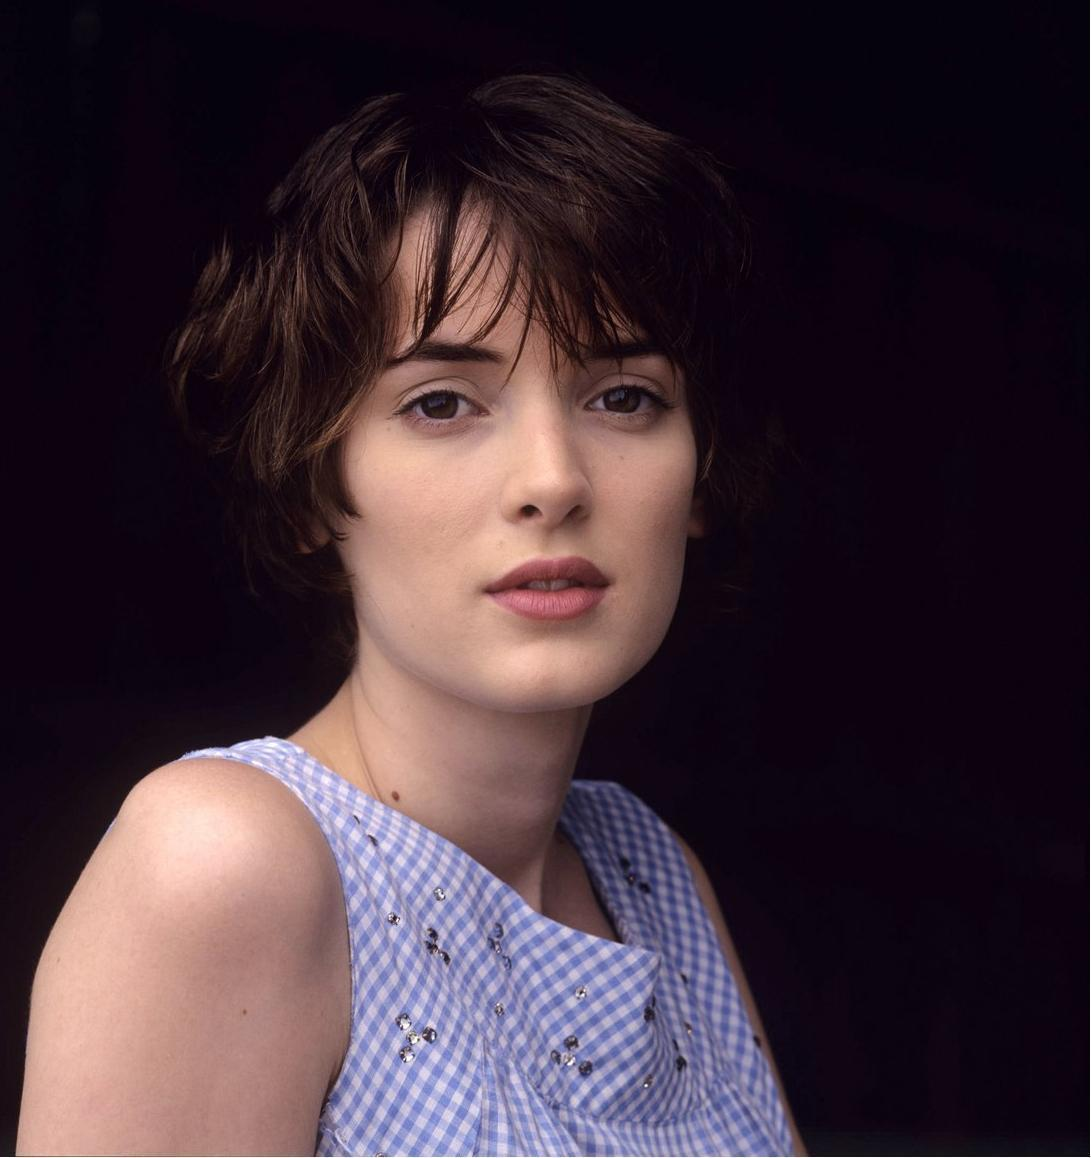 Winona Ryder Winona Ryder Photo 14604725 Fanpop